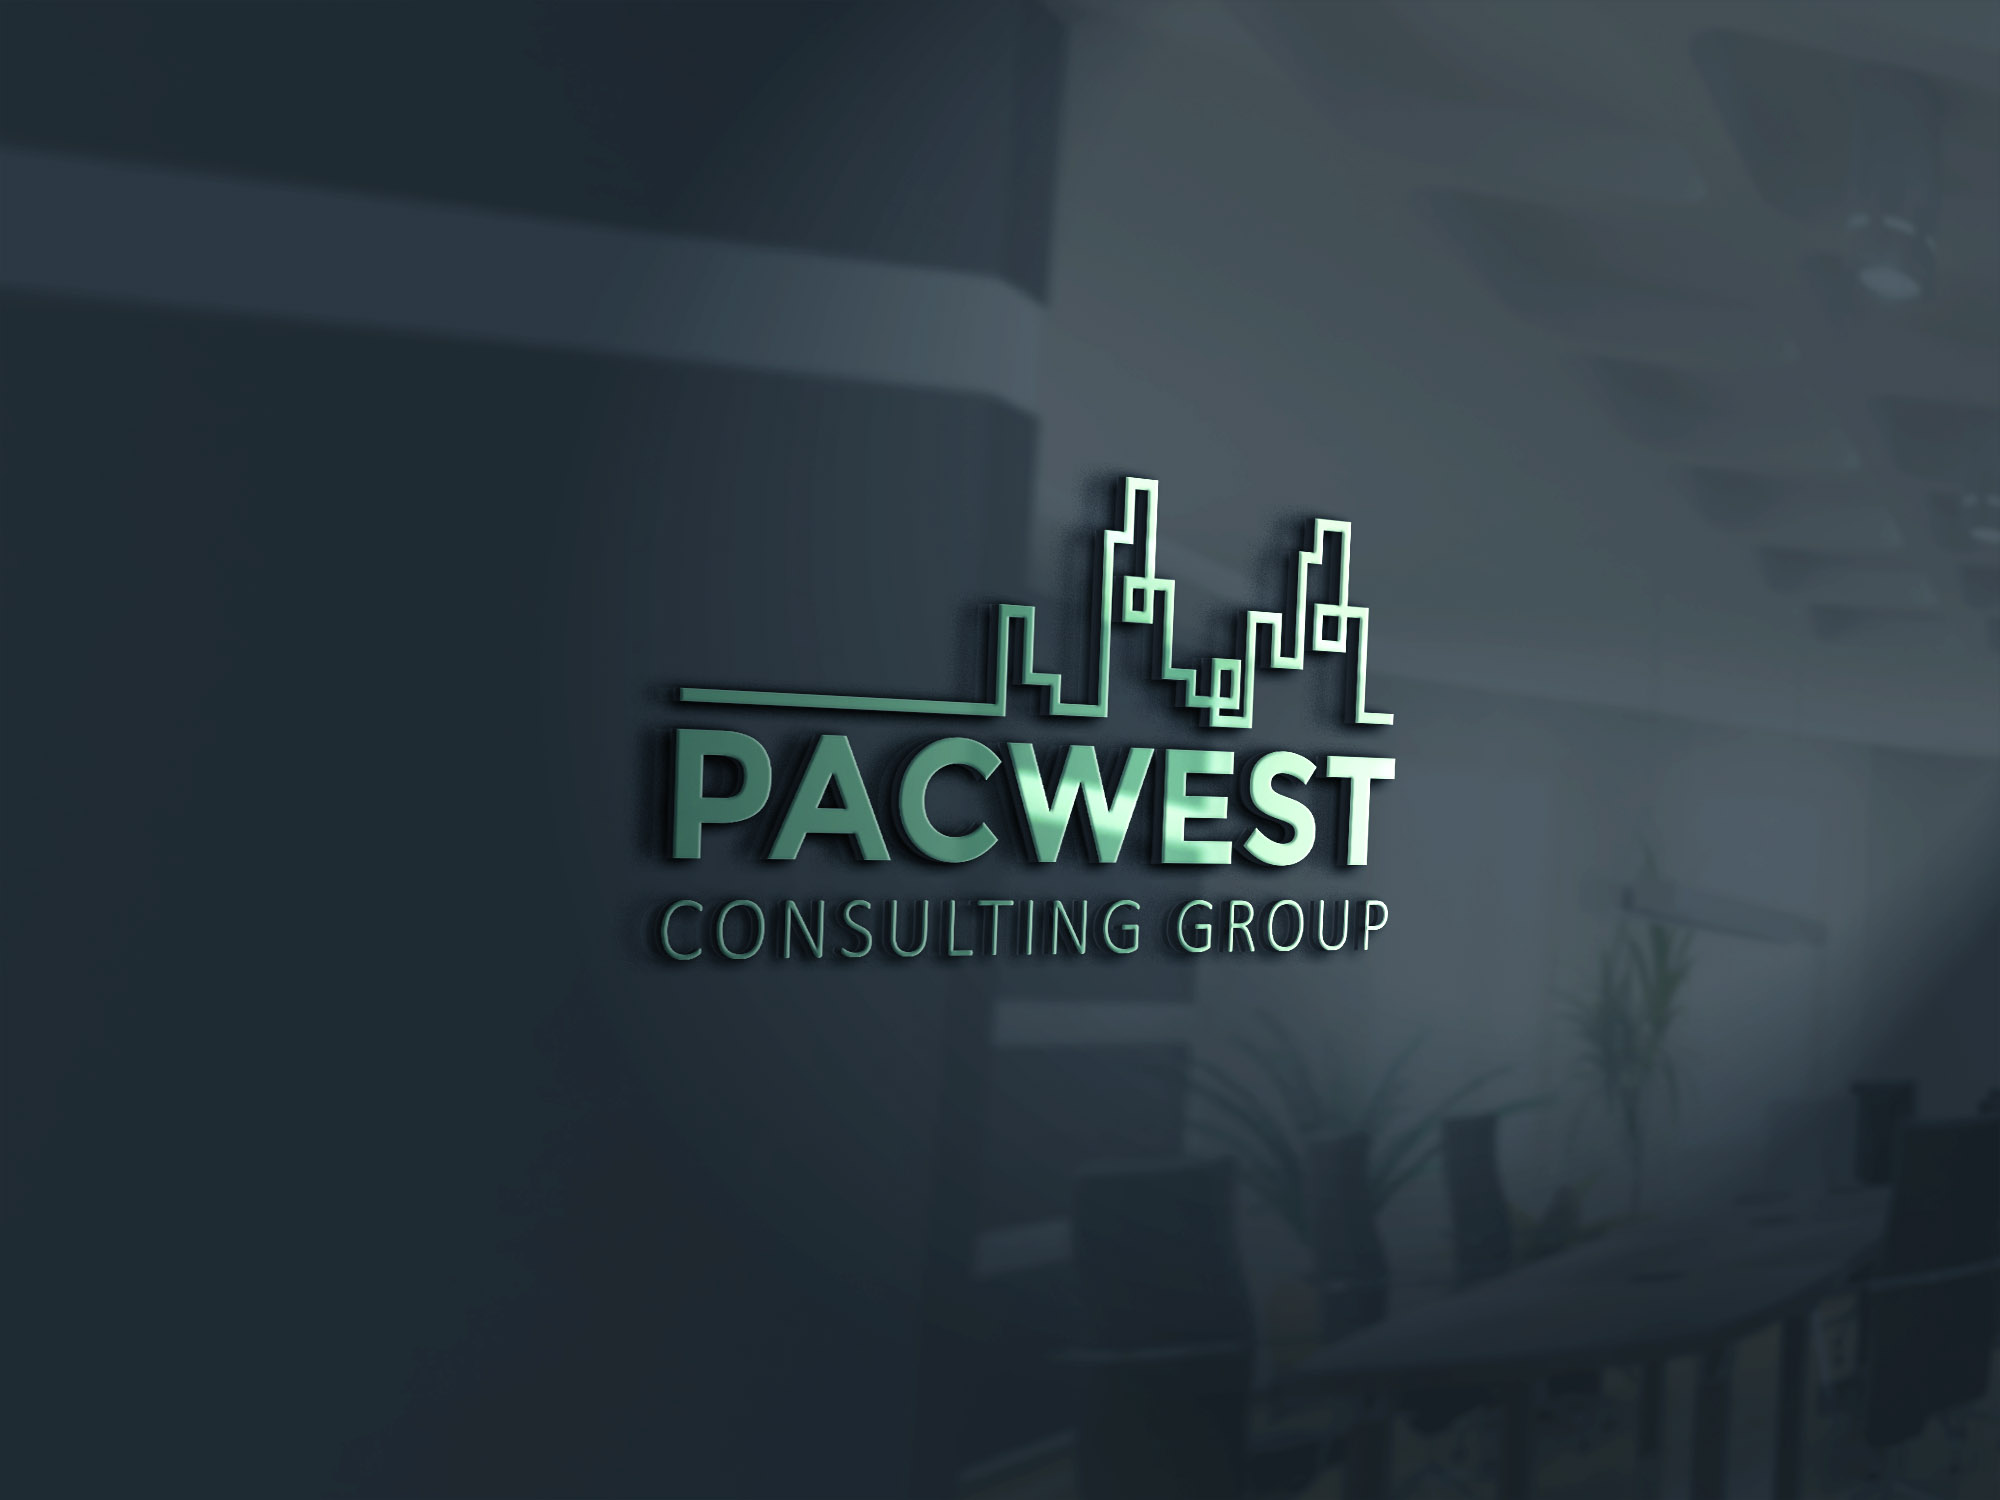 Logo Design by 354studio - Entry No. 34 in the Logo Design Contest Imaginative Logo Design for Pacwest Consulting Group.